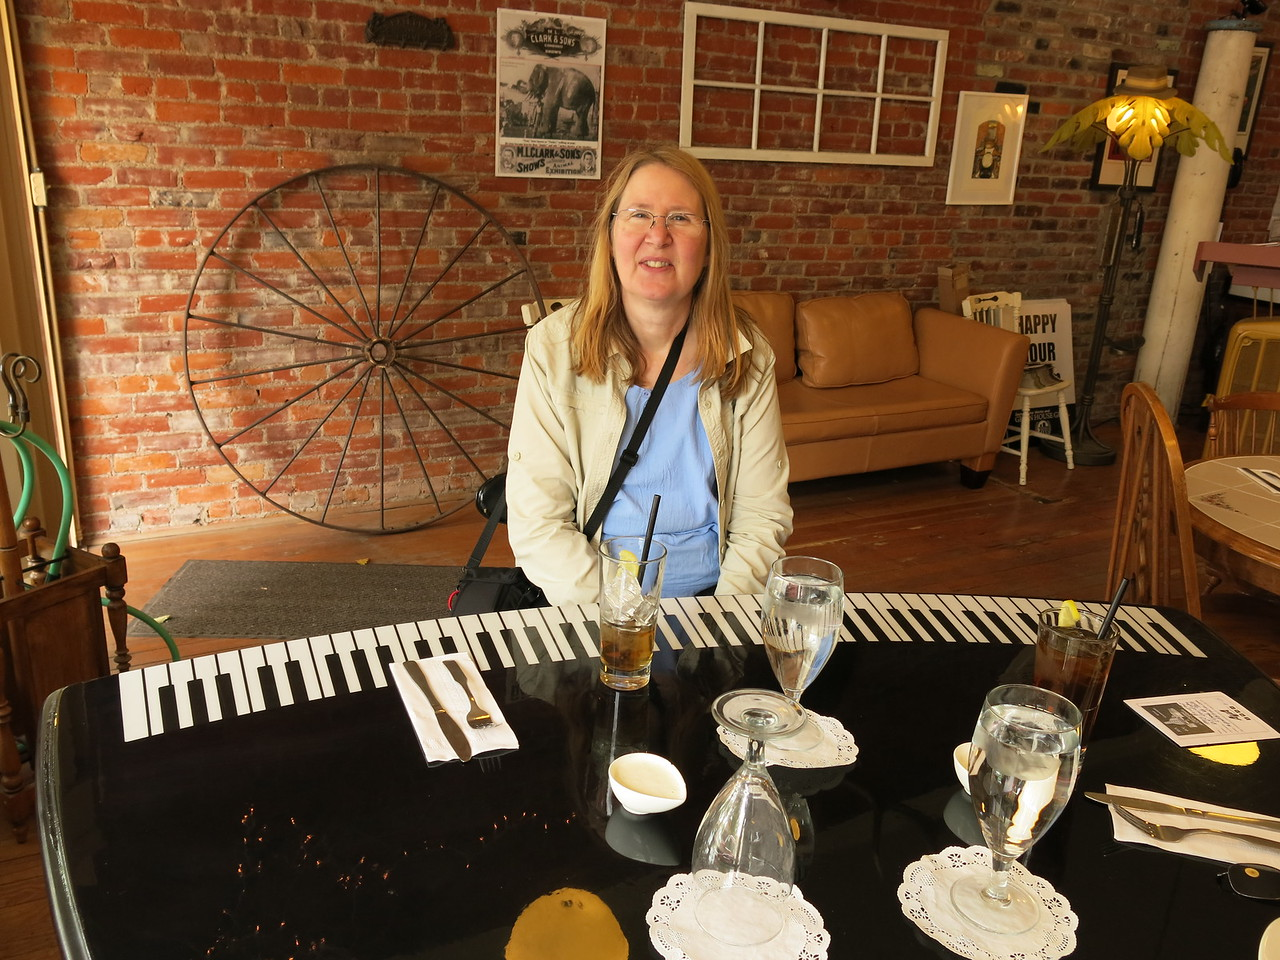 We had a good lunch at the Grain House Grill on Main Street.  Mary is sitting at the piano table.